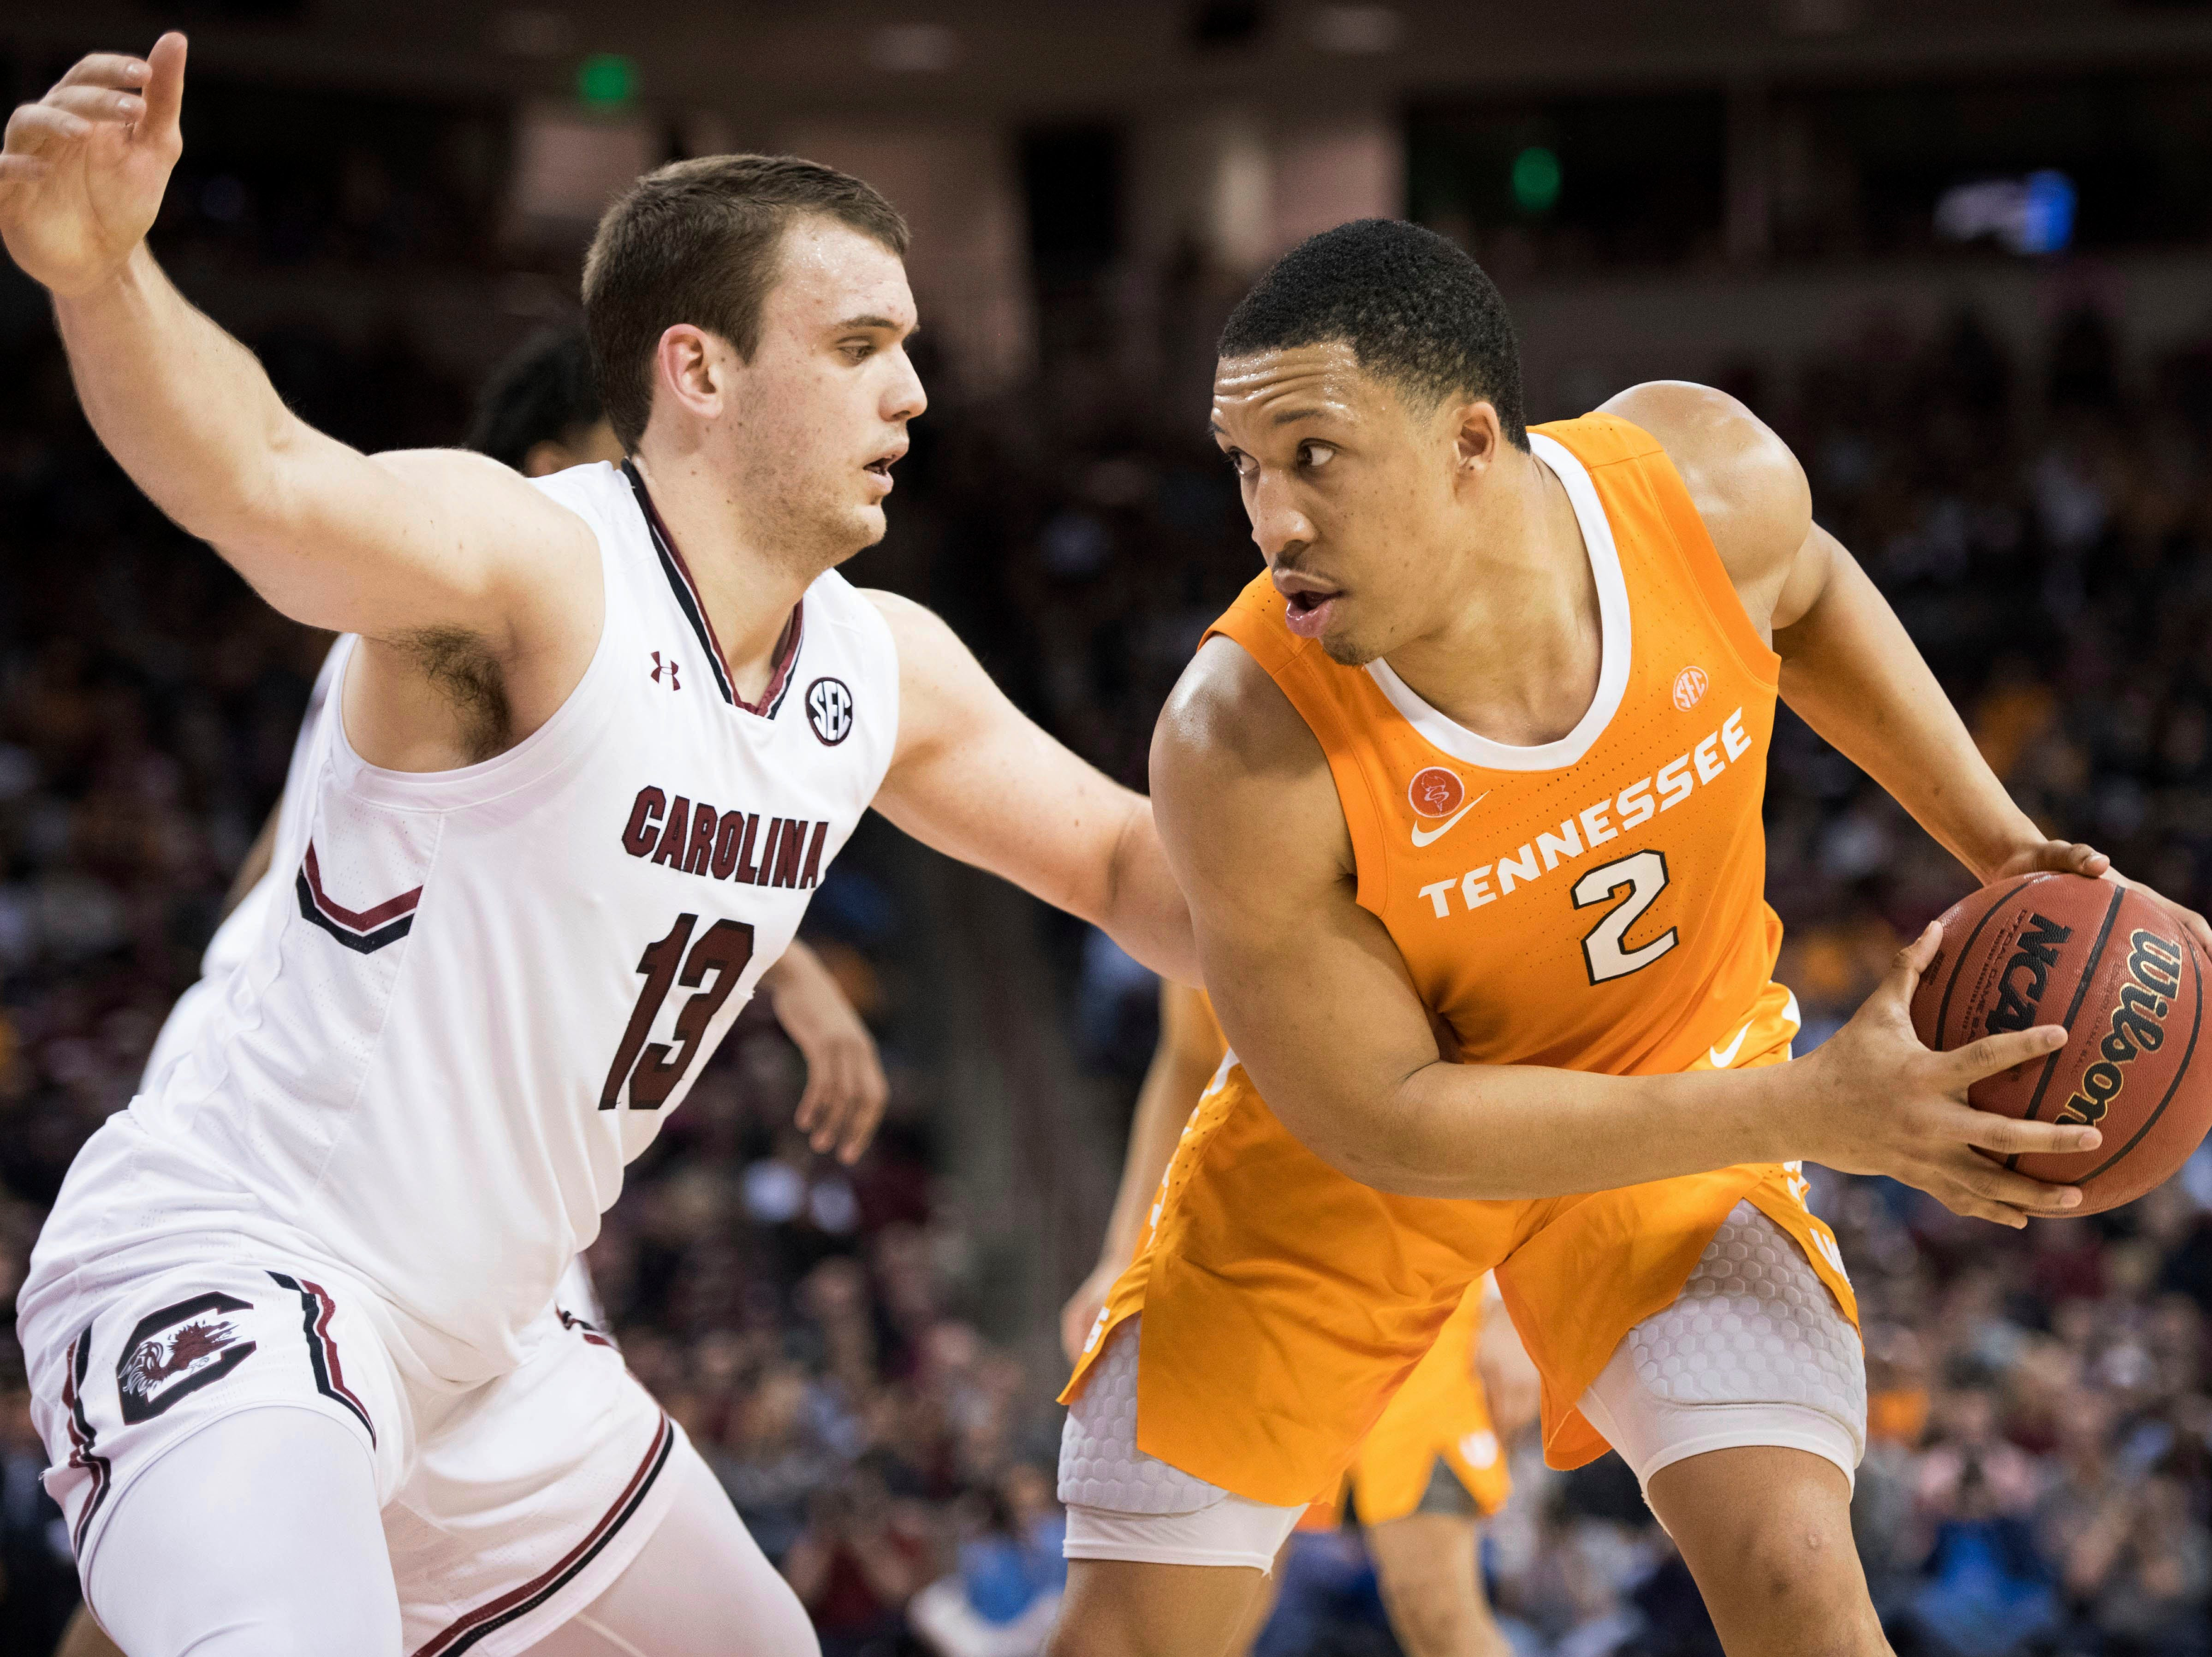 Tennessee forward Grant Williams (2) makes a move on South Carolina forward Felipe Haase (13) during the second half of an NCAA college basketball game Tuesday, Jan. 29, 2019, in Columbia, S.C. Tennessee defeated South Carolina 92-70.